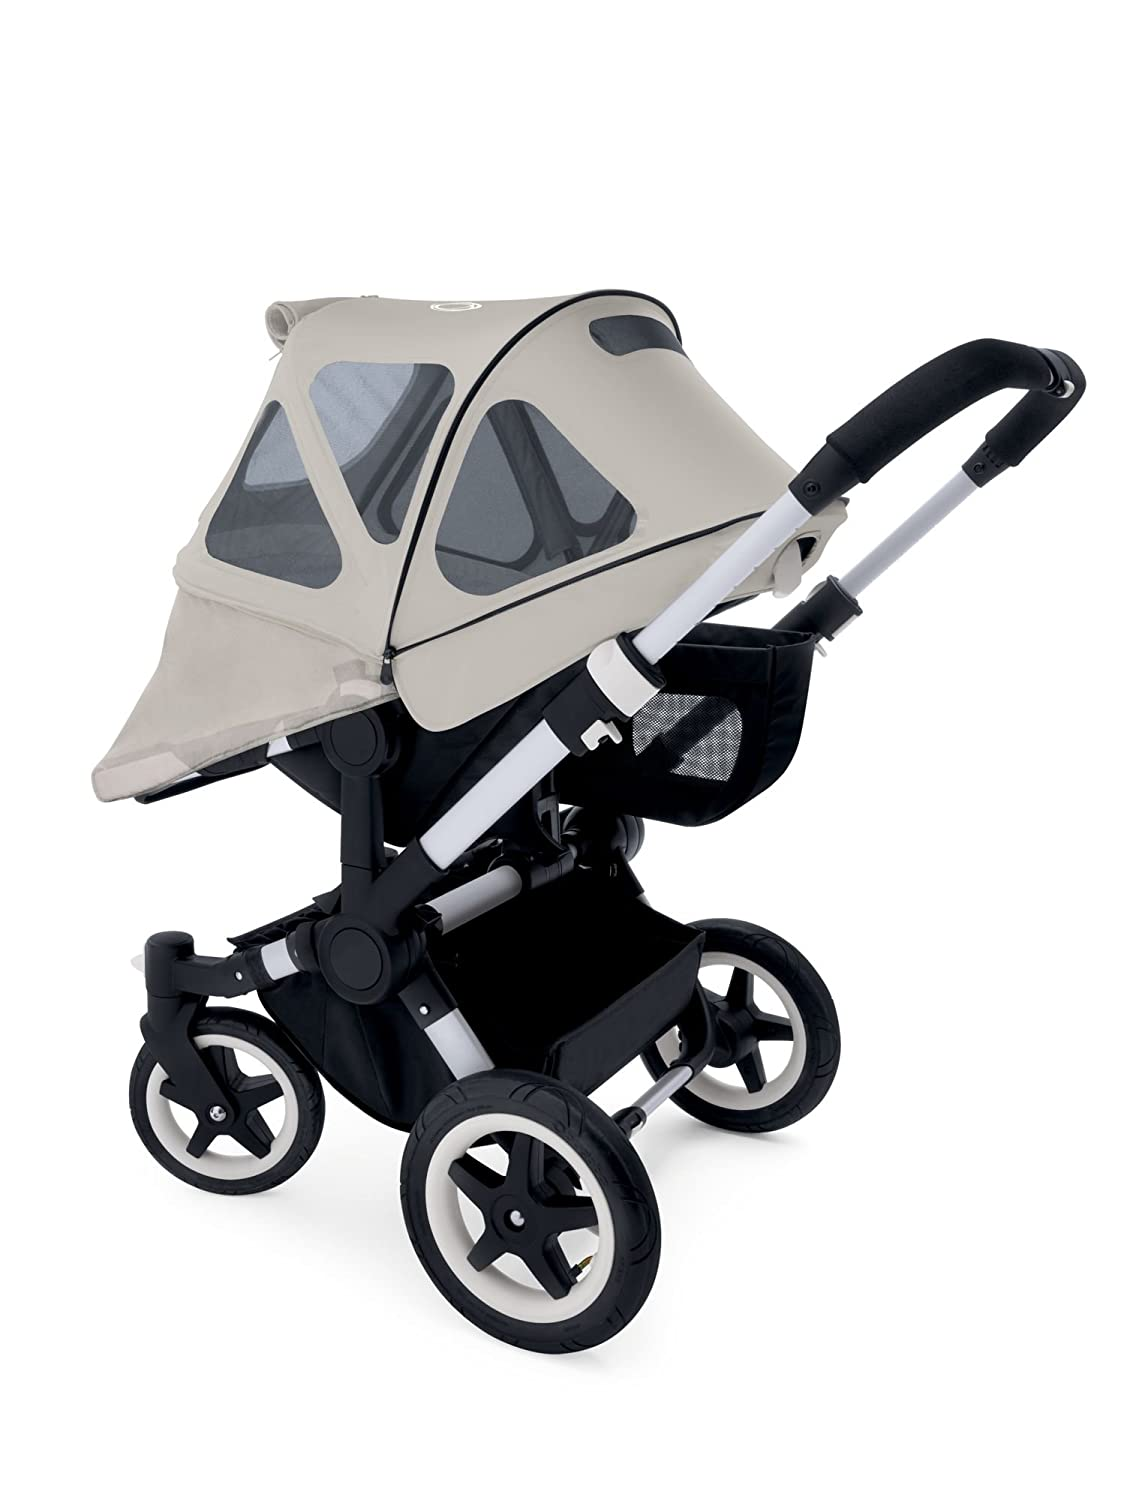 Extendable Sun Canopy with Mesh Ventilation Panels Artic Grey Bugaboo Donkey2 Breezy Sun Canopy